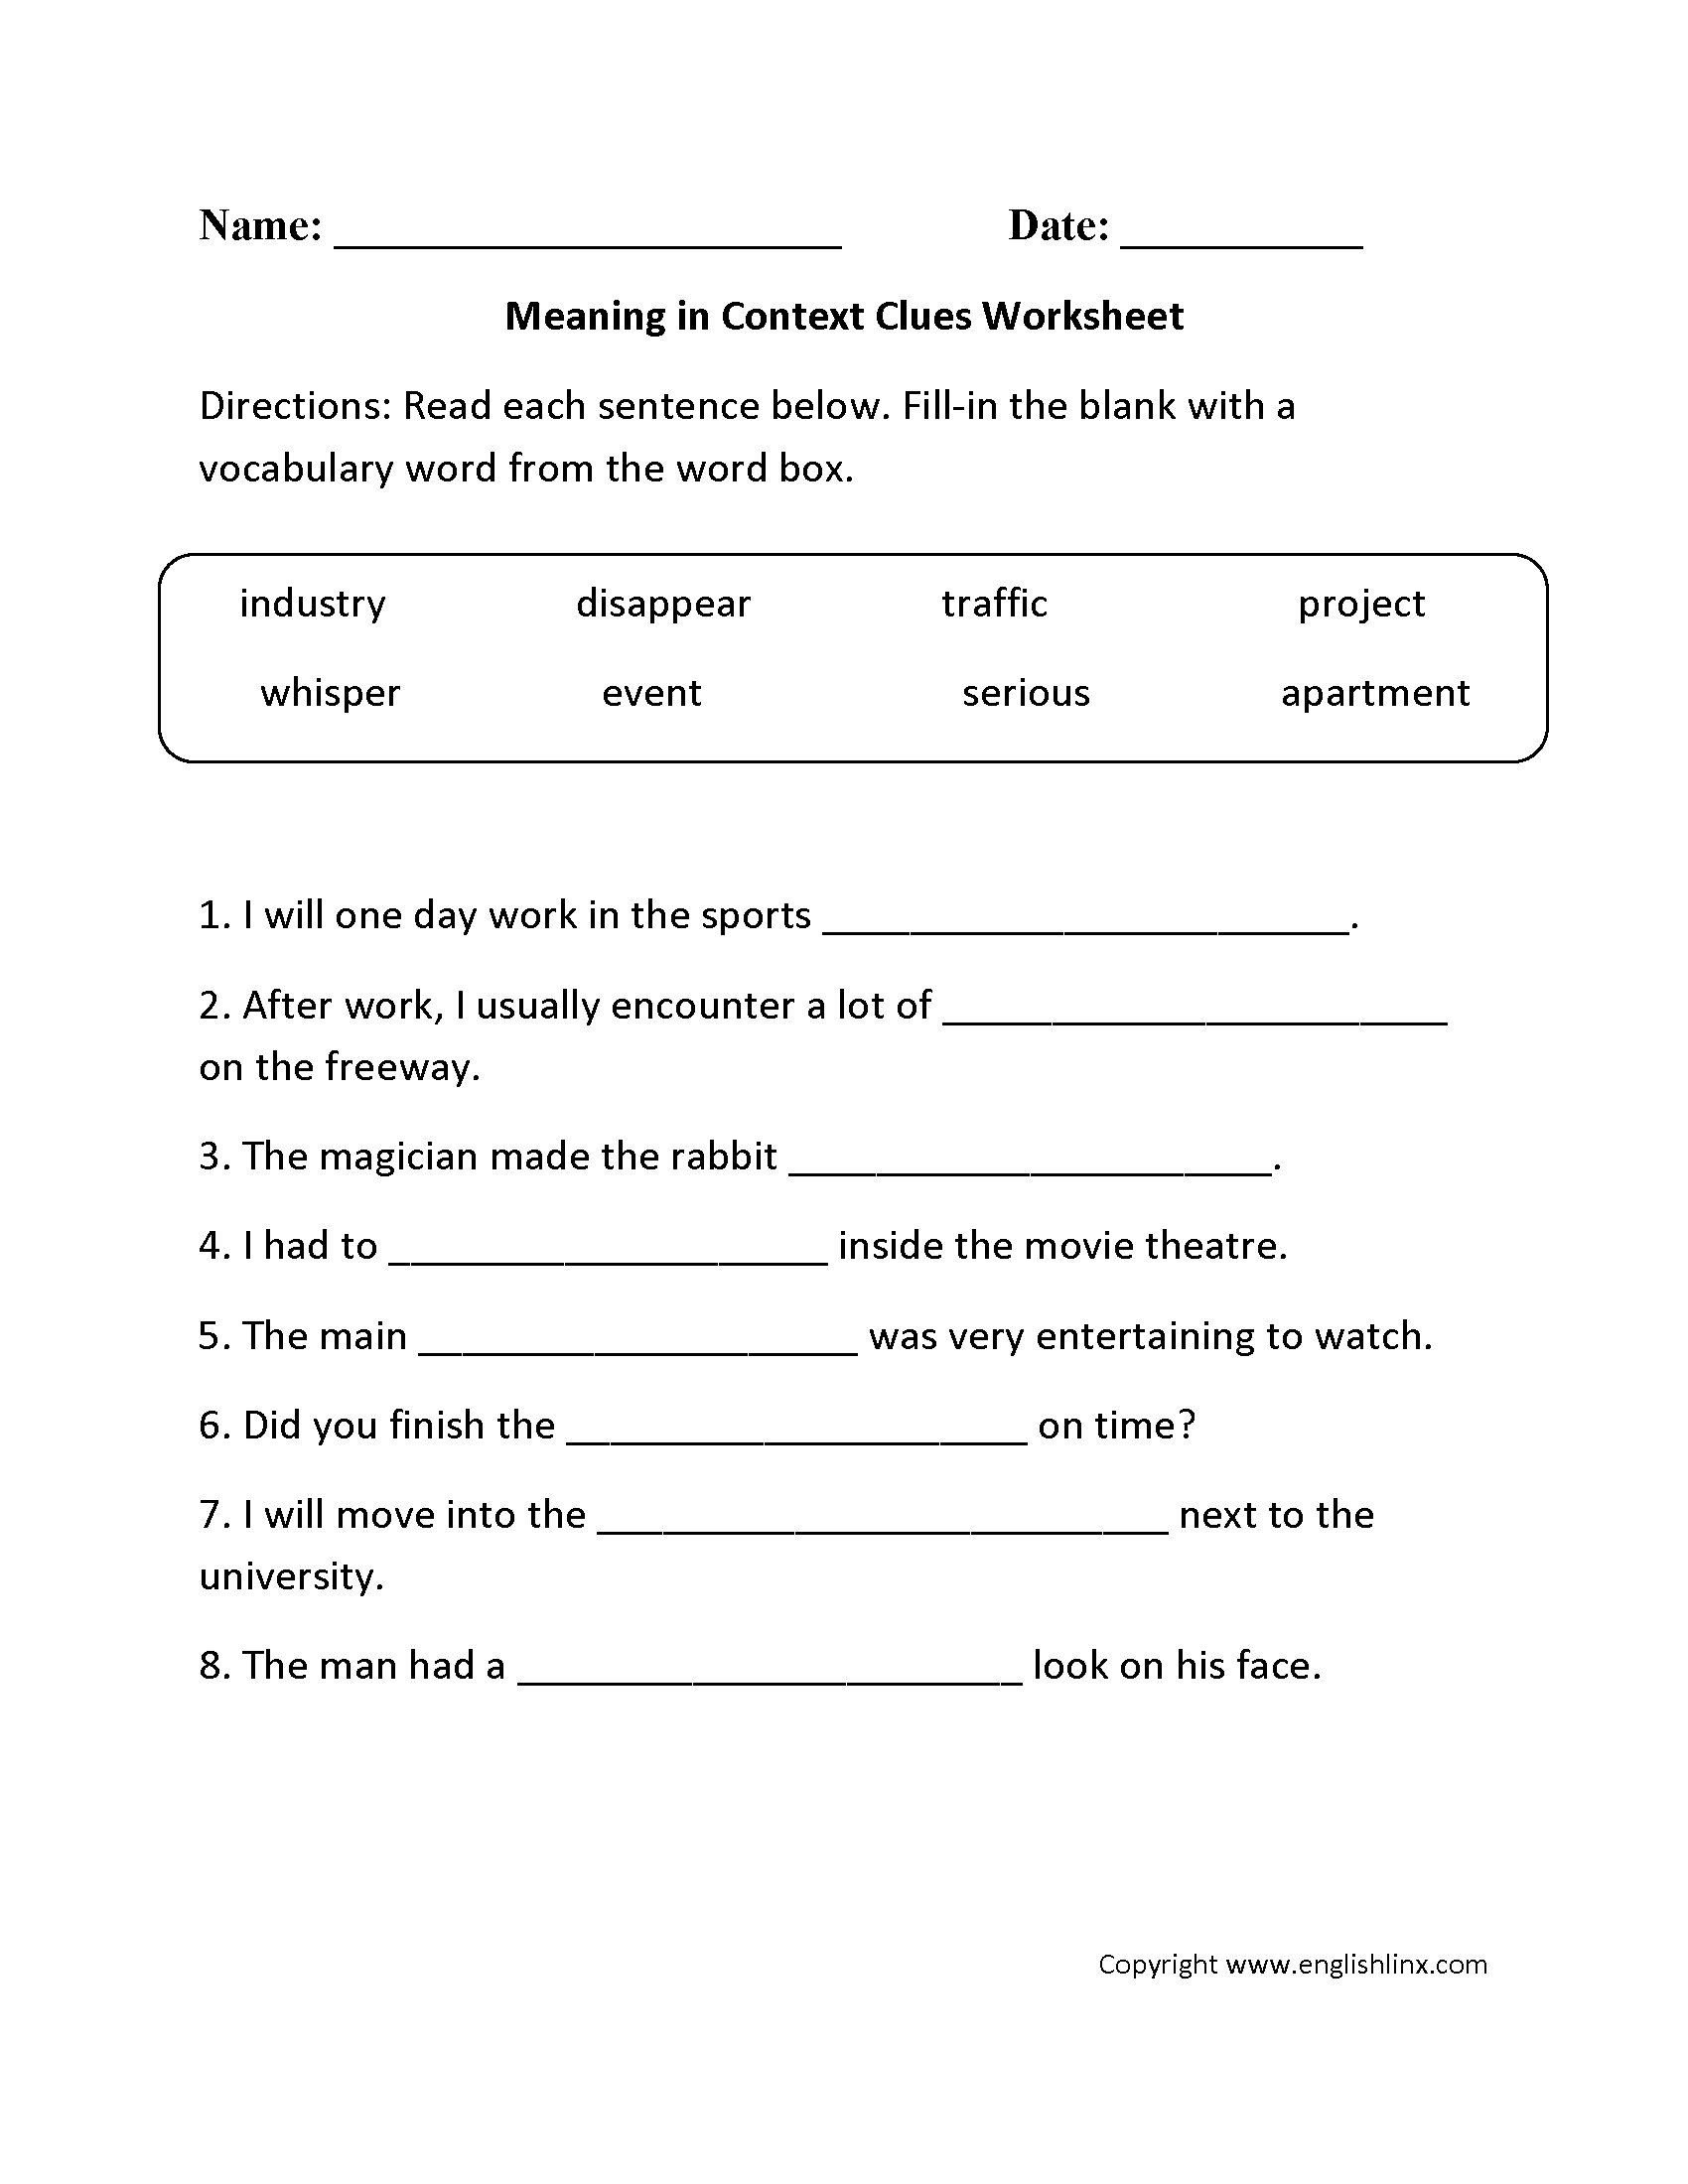 Context Clues Multiple Choice Worksheets 5th Grade